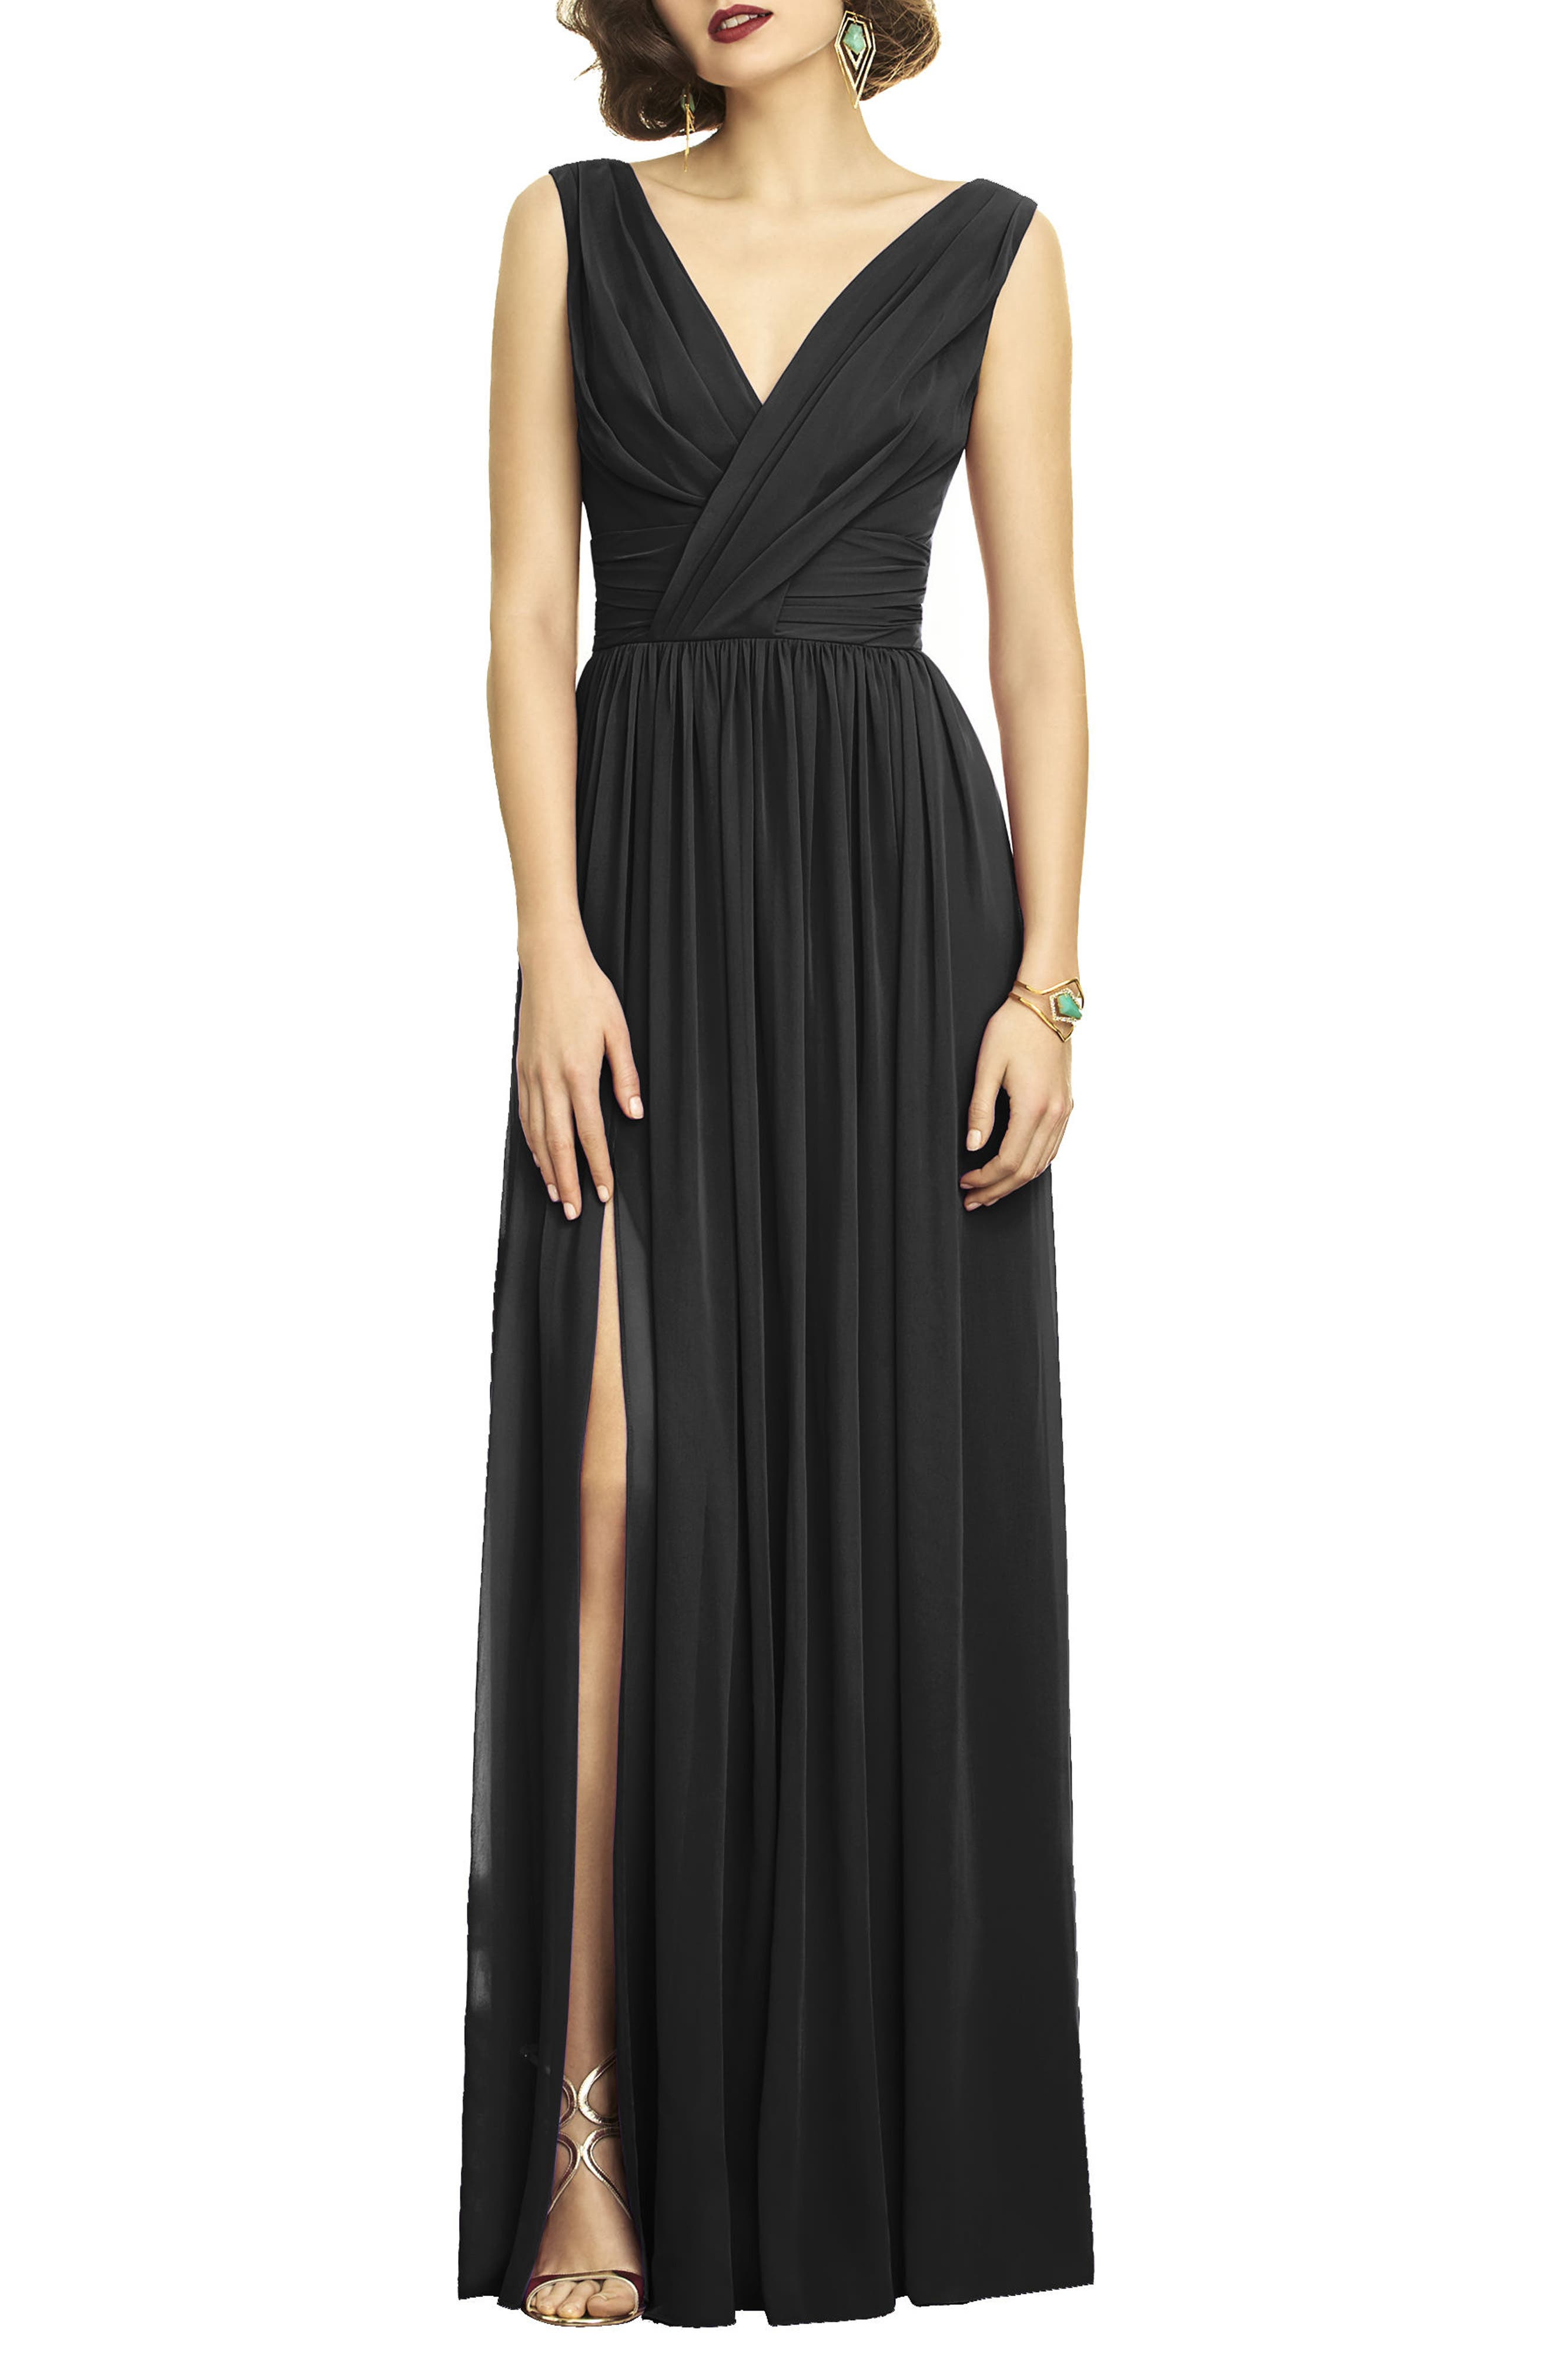 DESSY COLLECTION, Lux V-Neck Chiffon Gown, Main thumbnail 1, color, BLACK